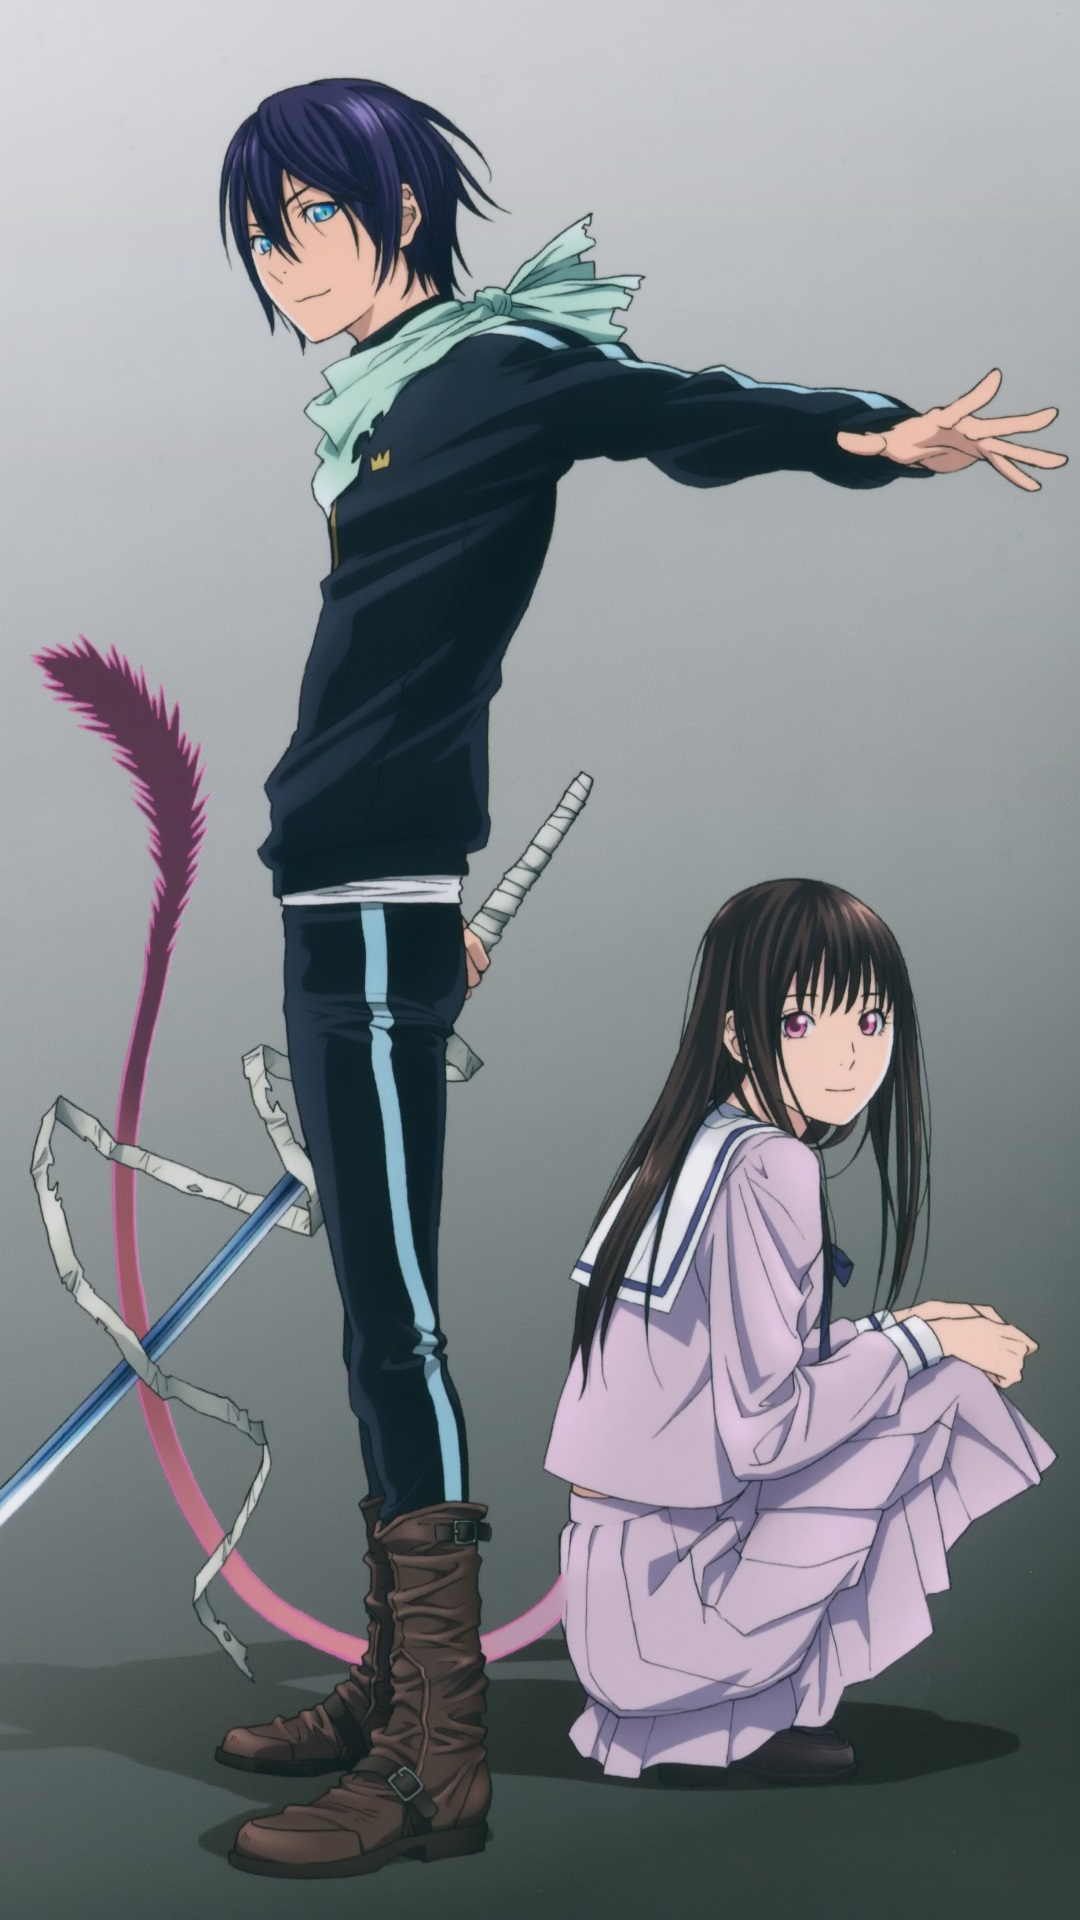 noragami wallpaper iphone